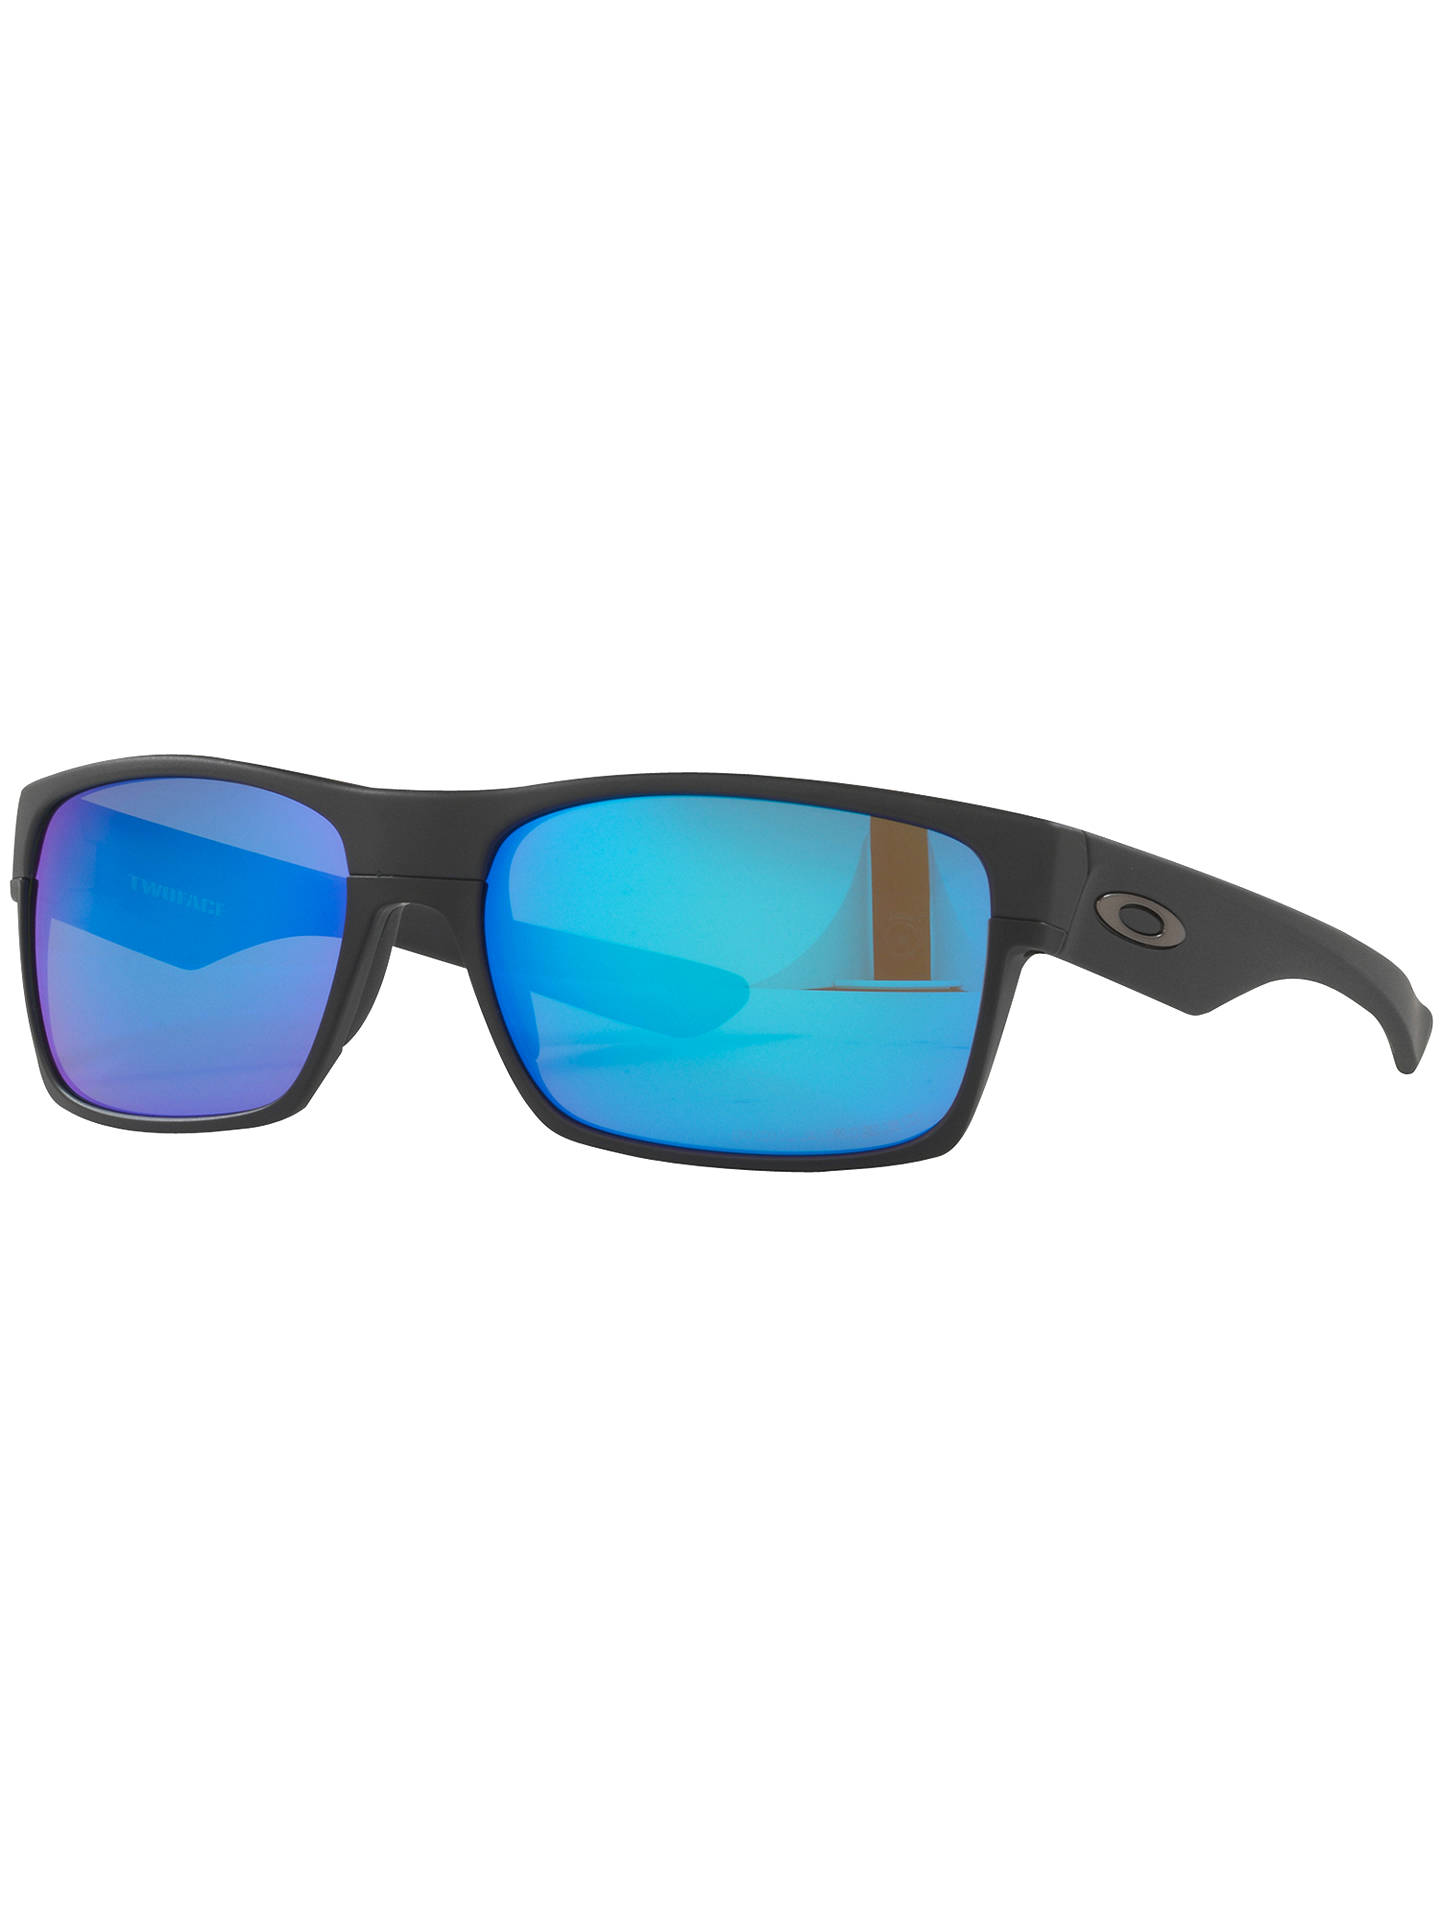 9a009e33ef Buy Oakley OO9189 Two Face Polarised Square Sunglasses